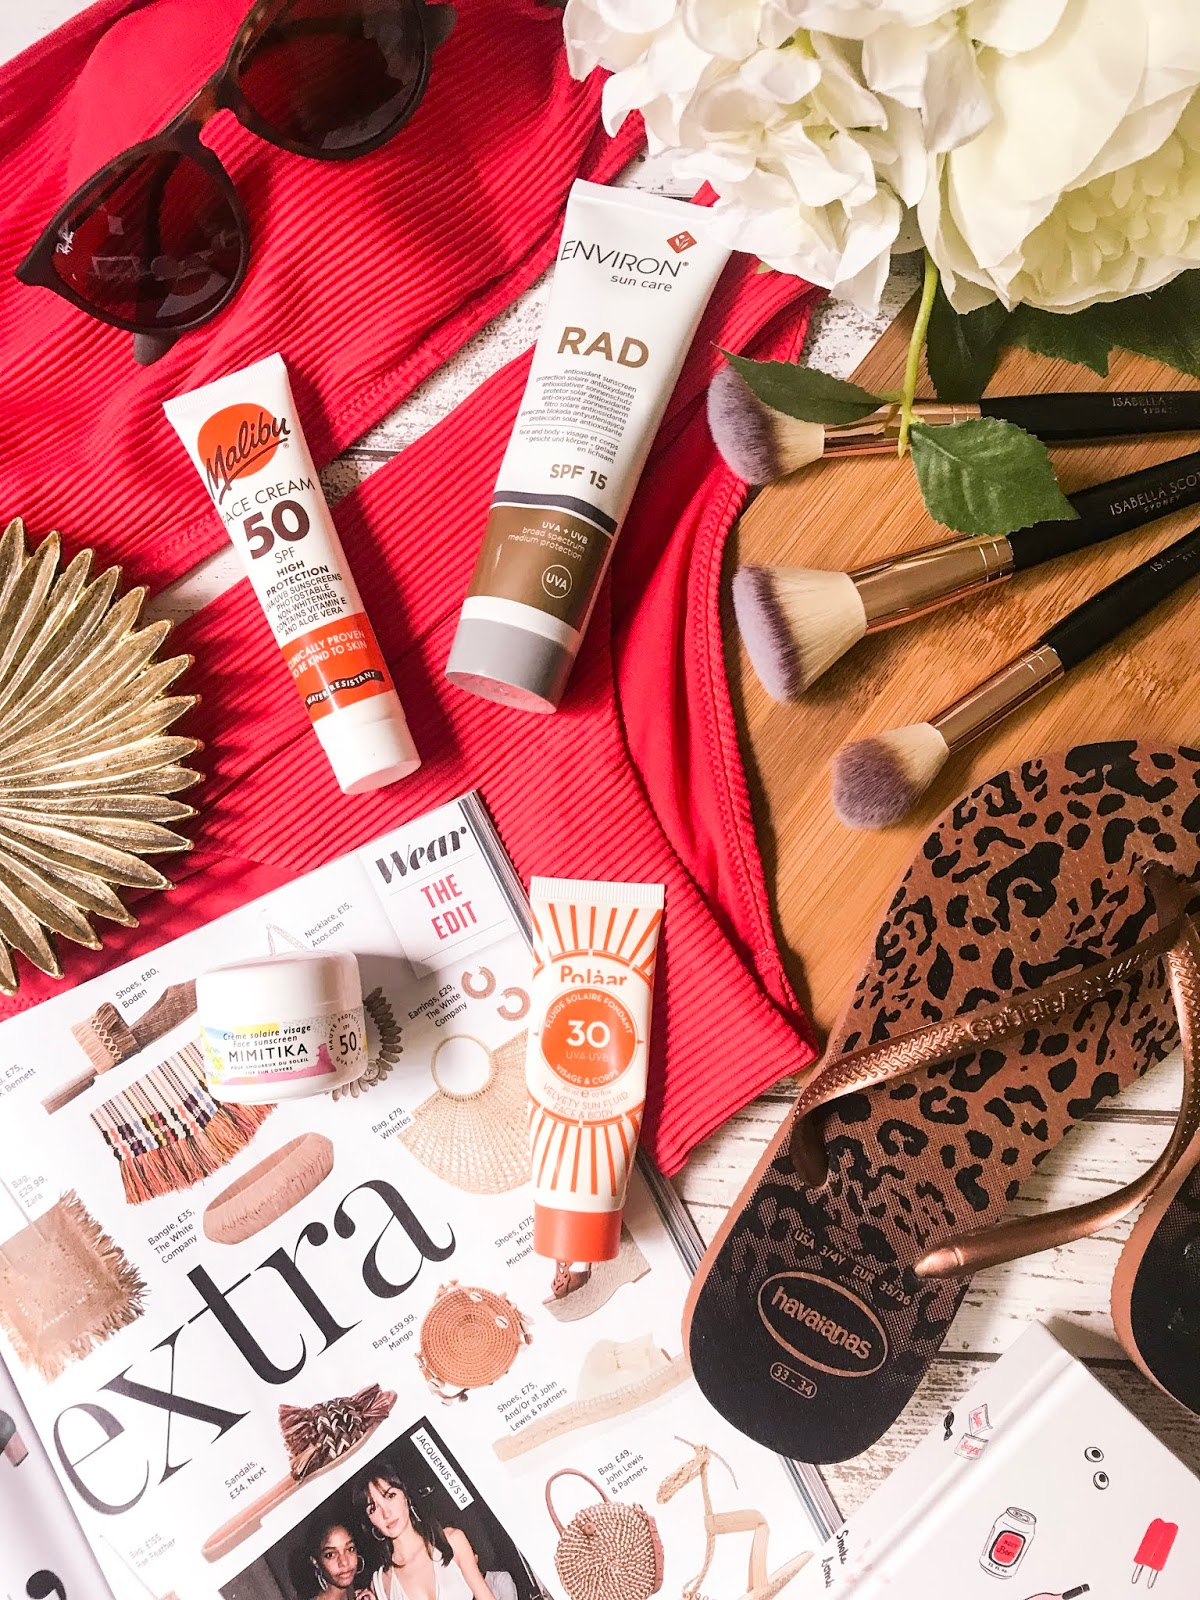 suncreens flatlay with 4 different sun creams